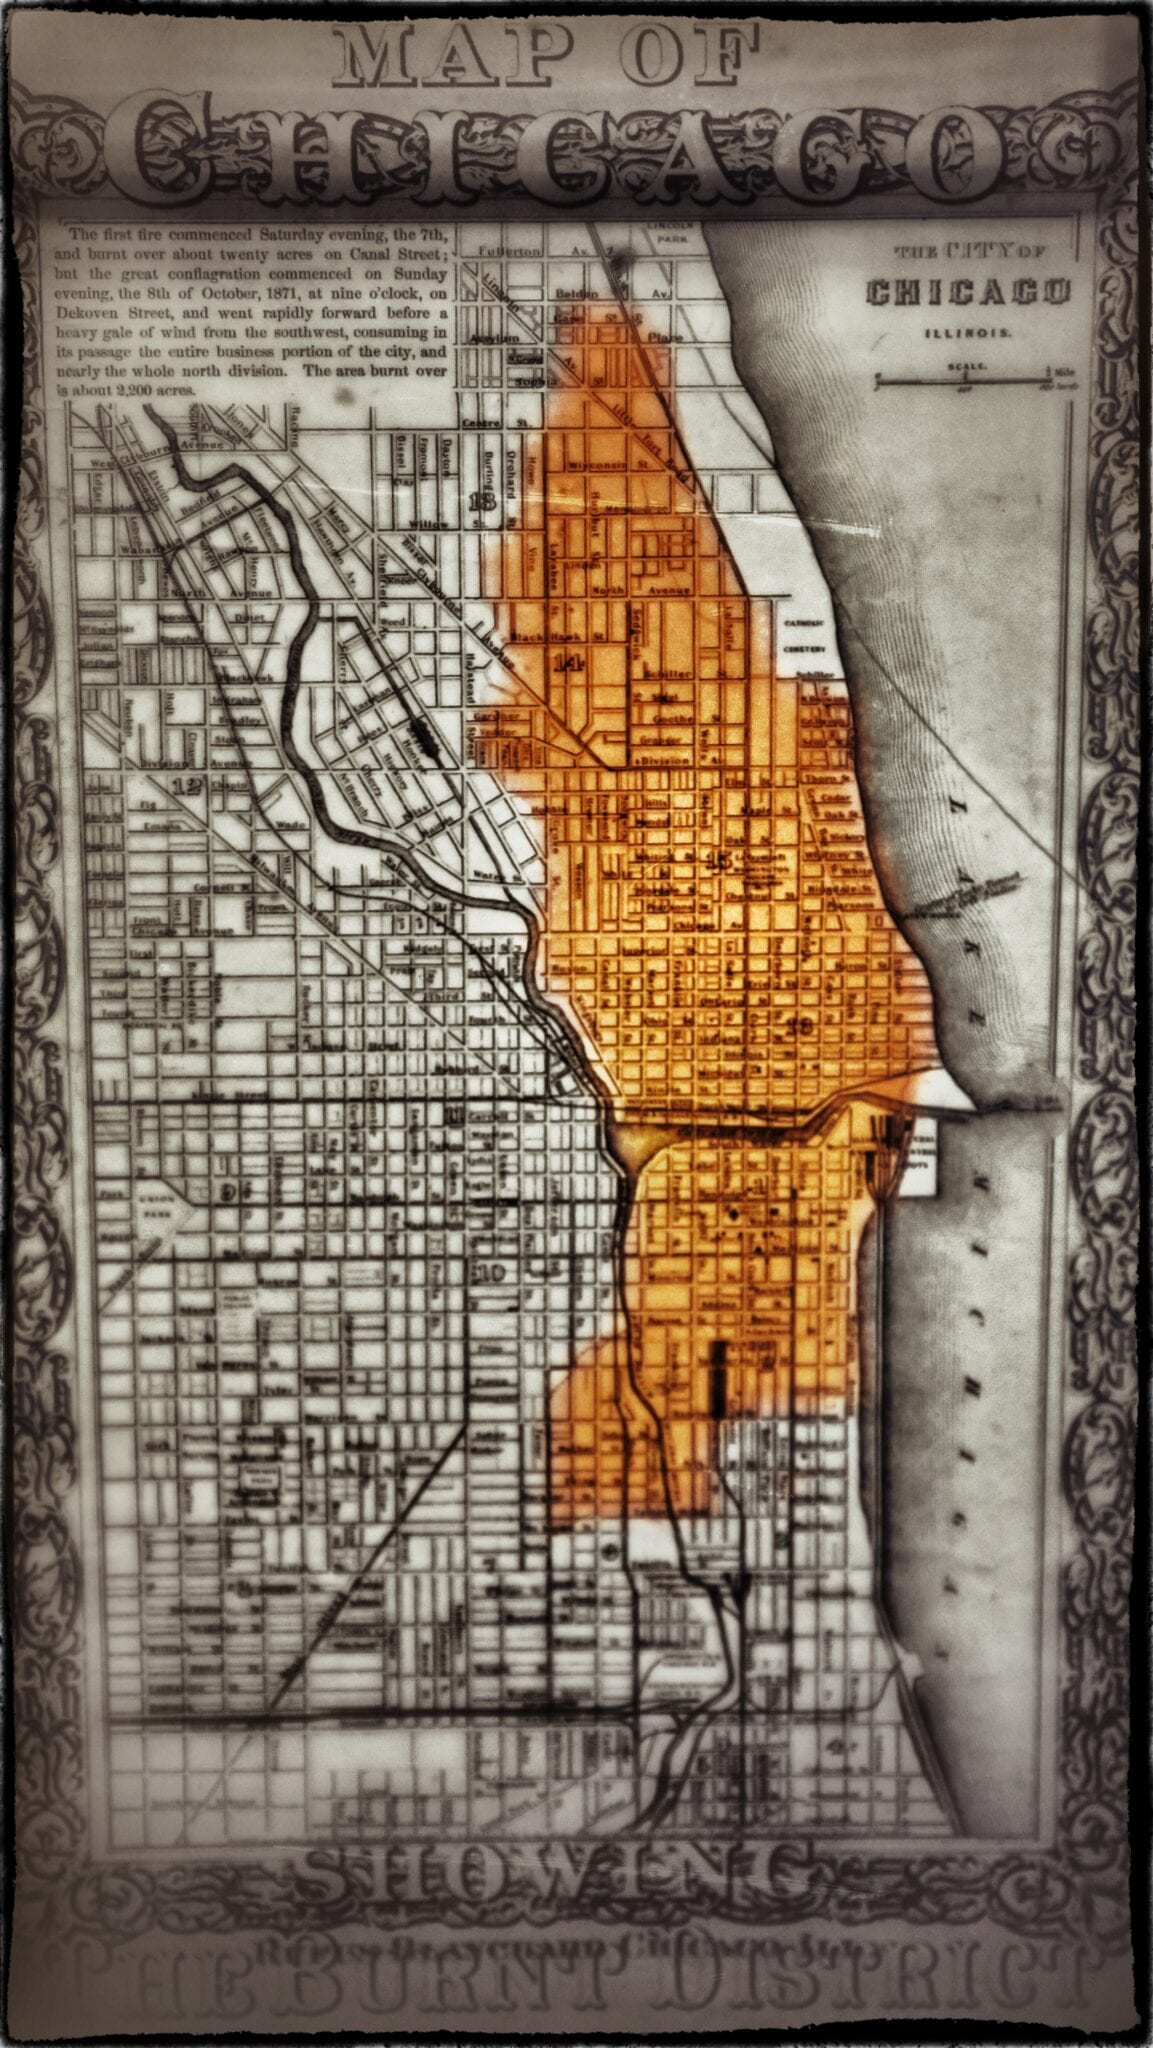 Interactive Smithsonian Map Shows What City Looked Like Before The - Chicago fire map